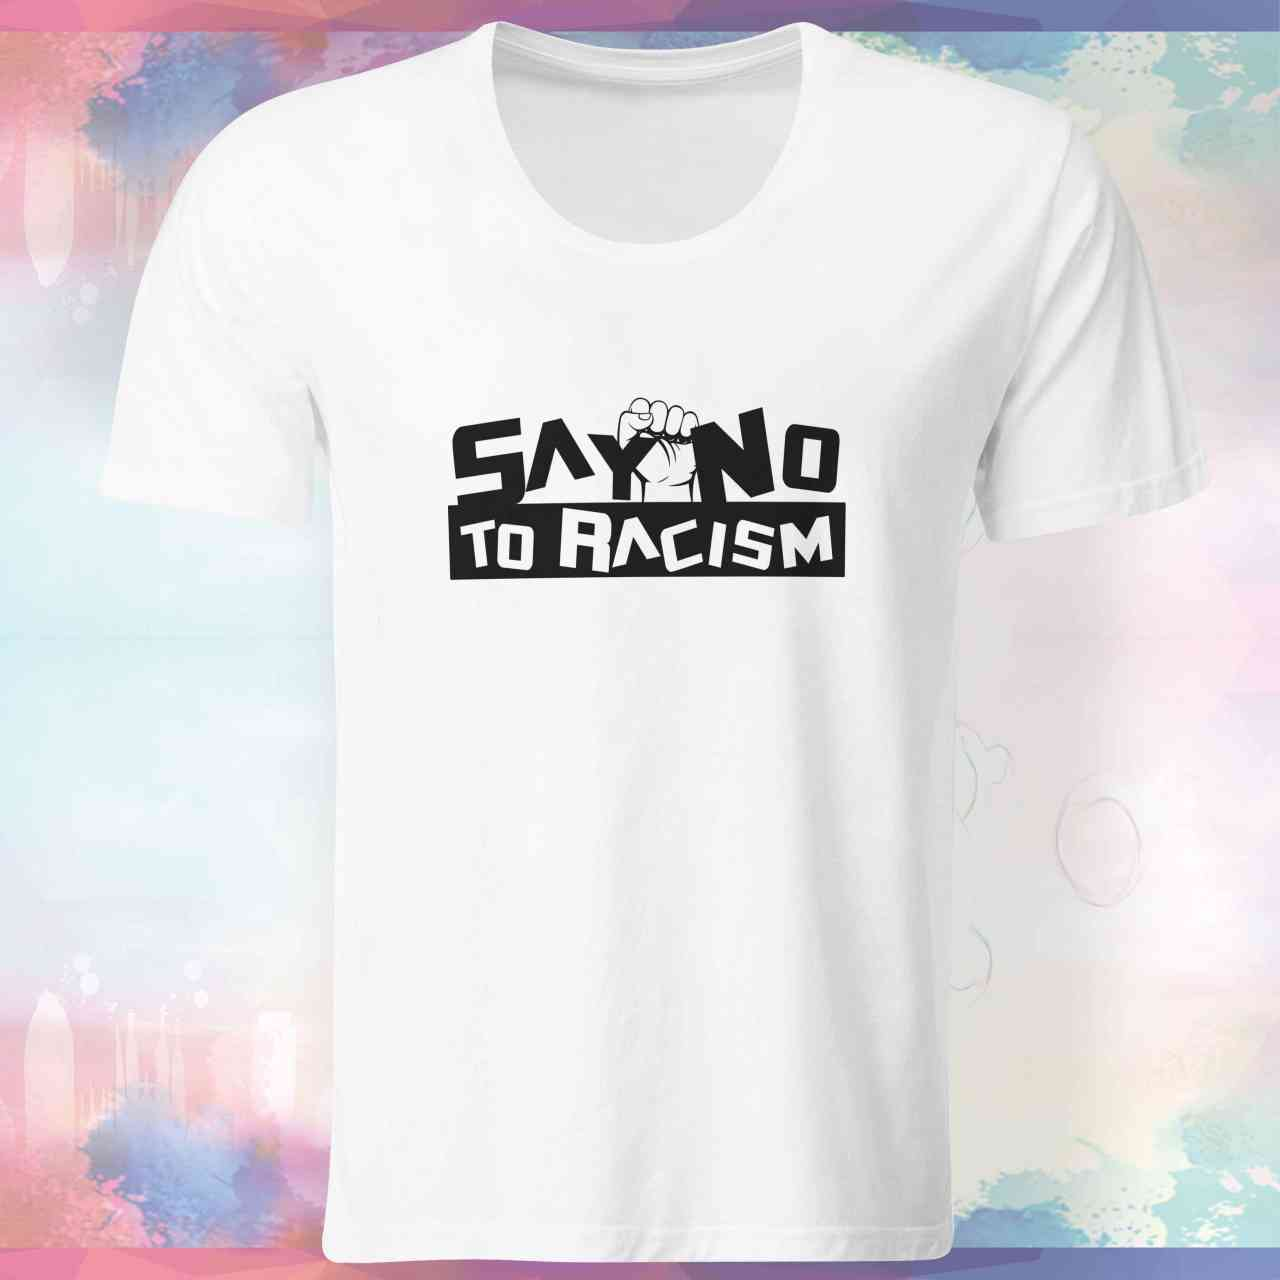 Say No to Racism Shirt | Nein zu Rassismus T-Shirt | #1 pickNstick